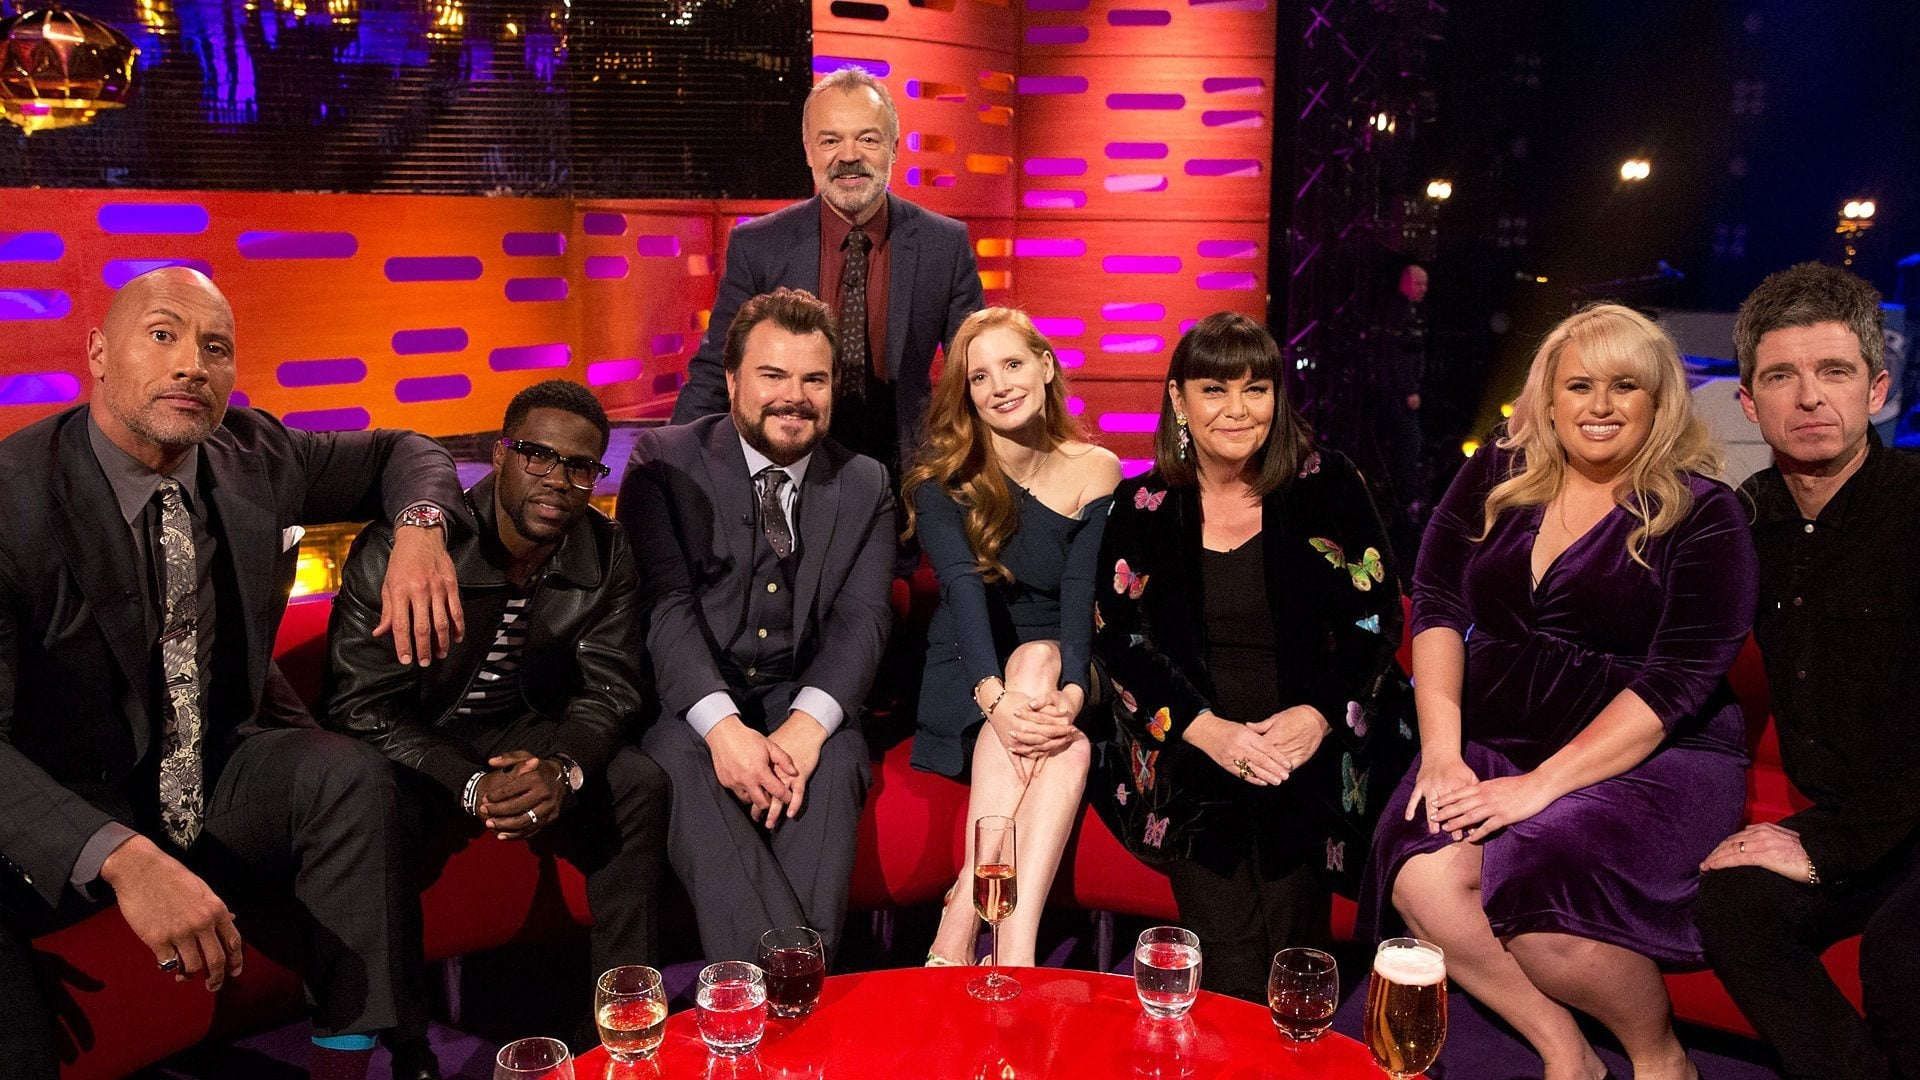 The Graham Norton Show Season 22 :Episode 10  Jessica Chastain, Dawn French, Rebel Wilson, Dwayne Johnson, Kevin Hart, Jack Black, Noel Gallagher